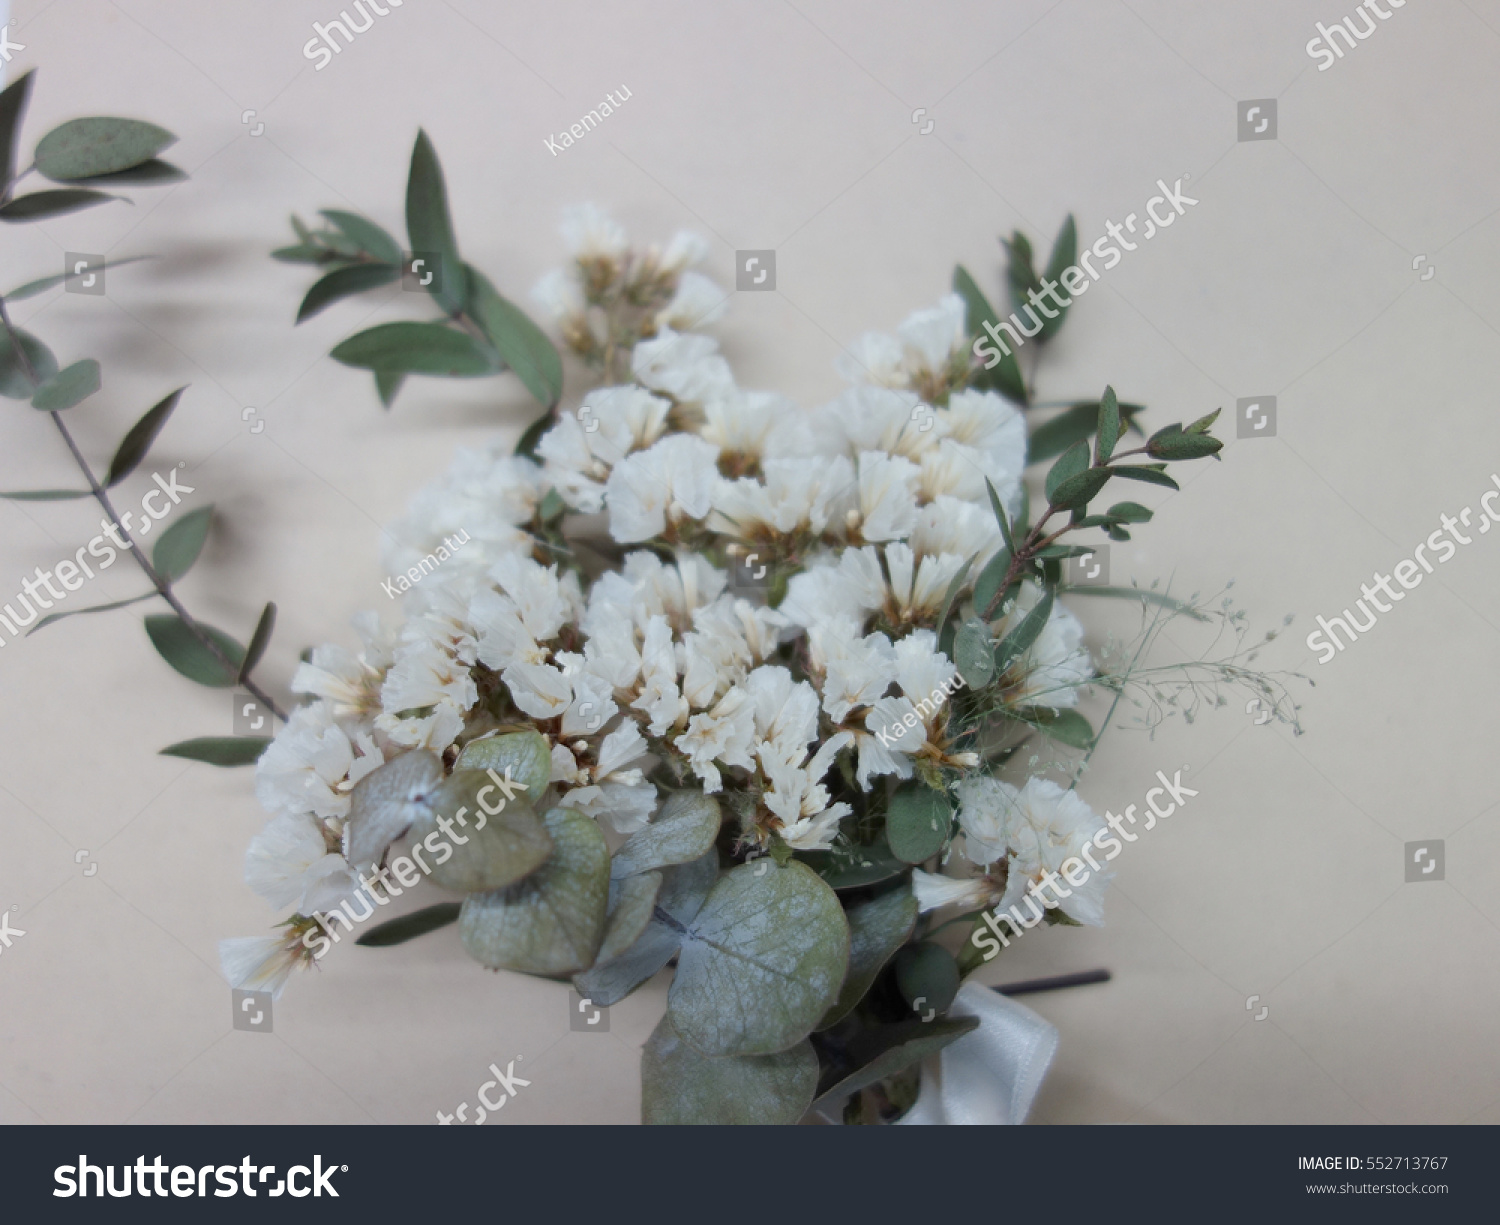 Green Leaf White Dried Flowers Bouquet Ivory Background Stock Photo